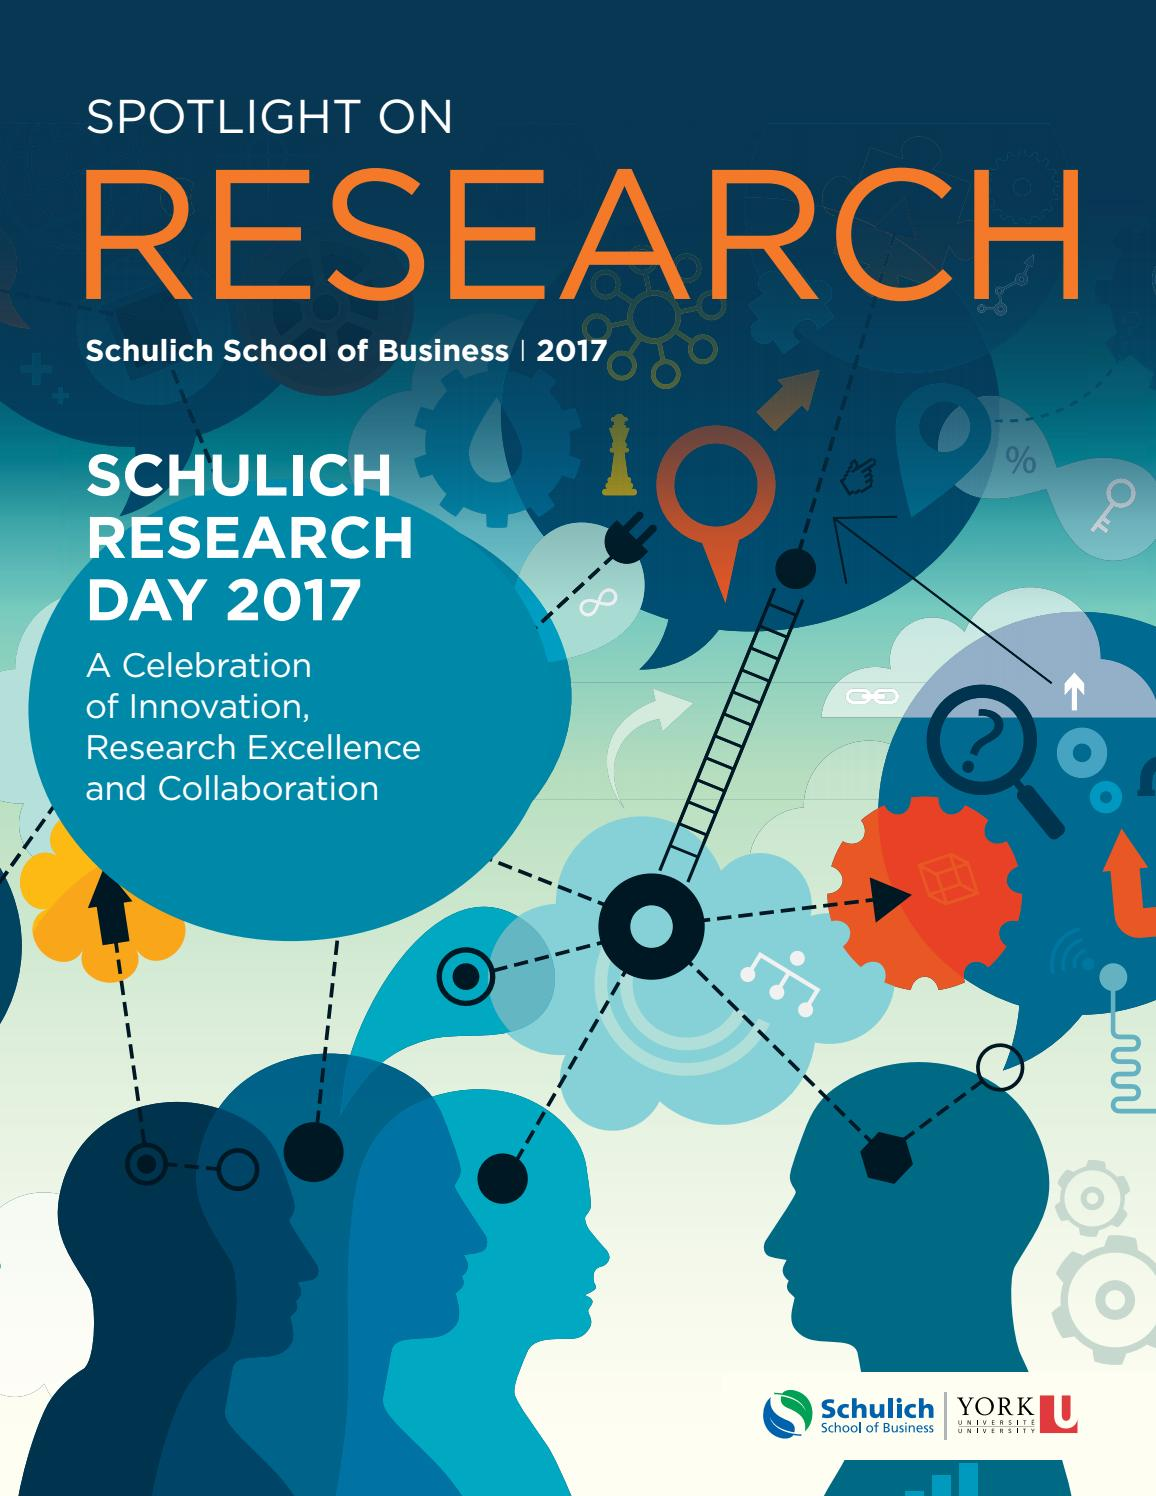 e126dfc5c56 Spotlight on Research 2017 by Schulich School of Business - issuu